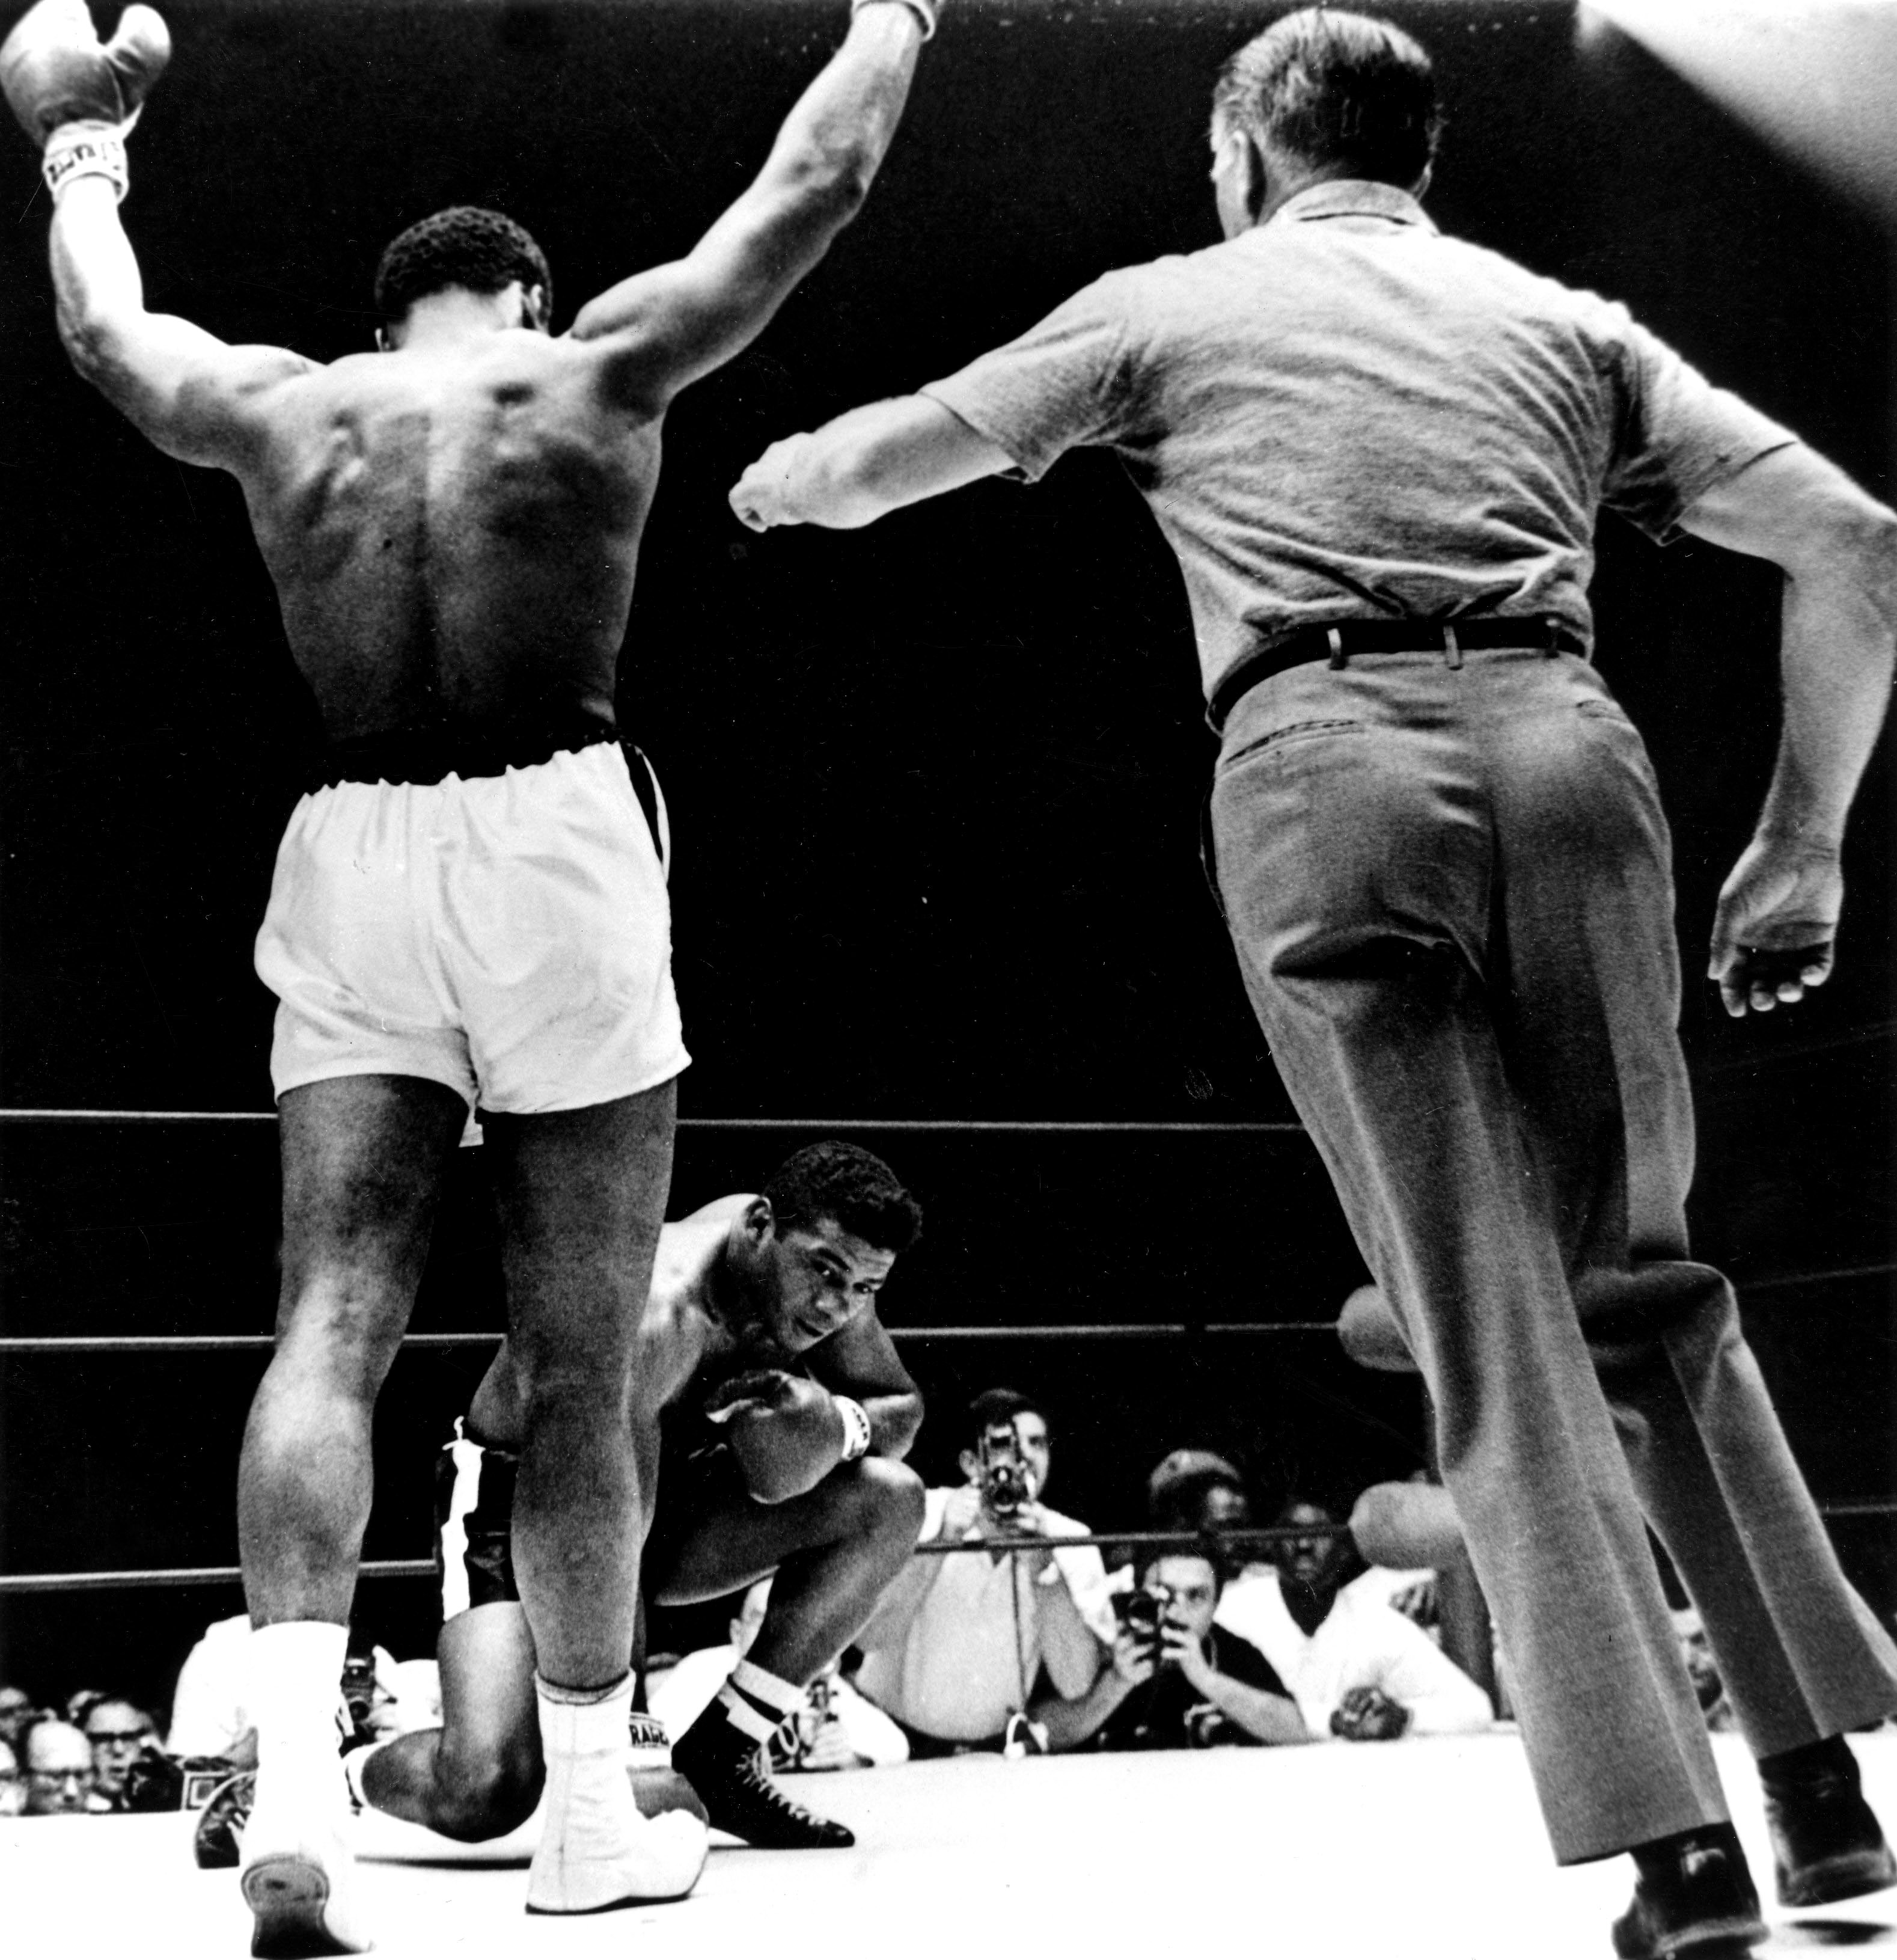 "Cassius Clay with arms raised, is waived to the neutral corner as Floyd Patterson (kneeling) takes a mandatory count of eight in the 6th round of their title fight in Las Vegas. Clay won on a technical knock-out in the 12th round to retain his title. The referee, Mr Krause, had to warn Clay for talking to Patterson early in the fight. ""Clay tried from the first round to humiliate Patterson"", Mr Krause said. ""He tortured him with remarks like, 'Come on American, come on white American'"". After the fight, Clay showered Patterson with unstinting praise and then typically demanded plenty of credit for himself from the ""American Public"". Clay spent nearly 15 minutes in the ring after the fight delivering a long impassioned oration, before finally heading for his dressing room. 22nd November 1965."